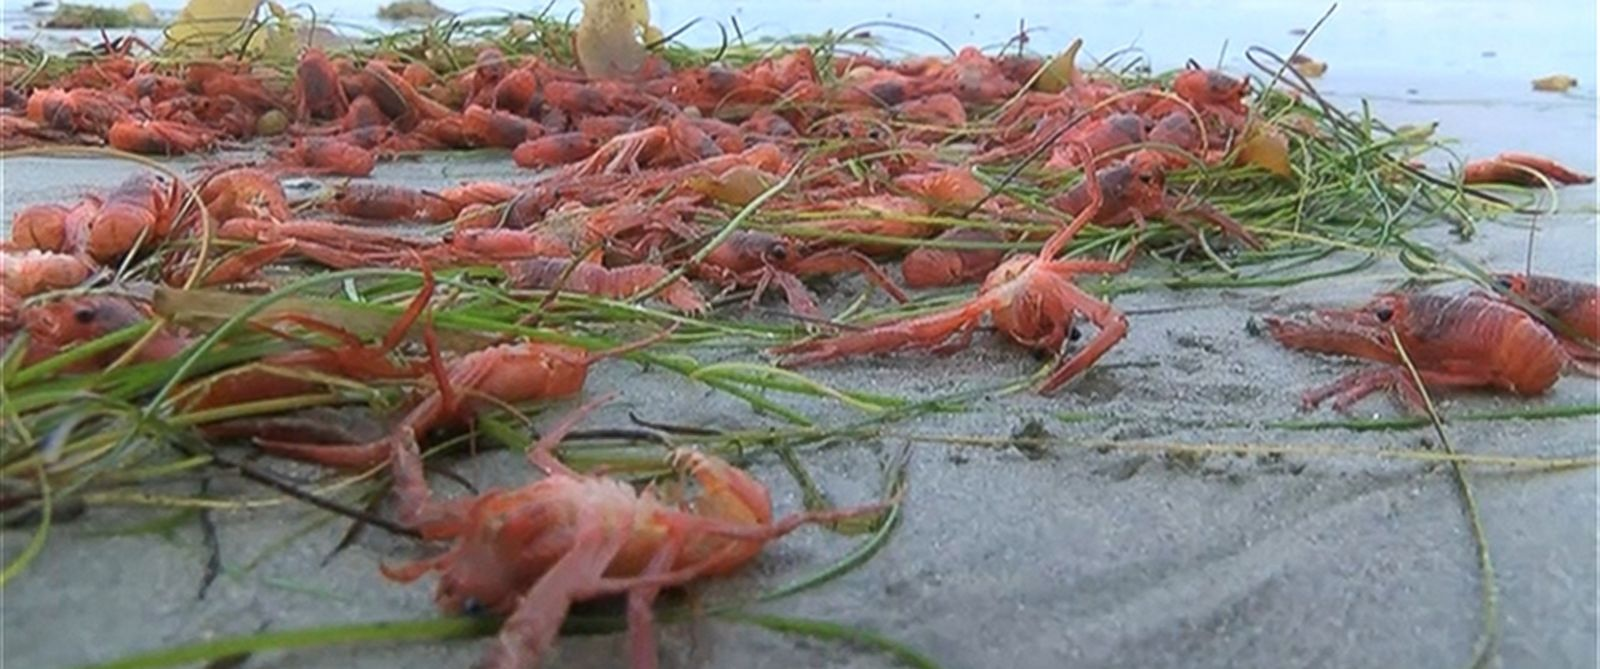 PHOTO: Thousands of tuna crabs washed up on a California beach.